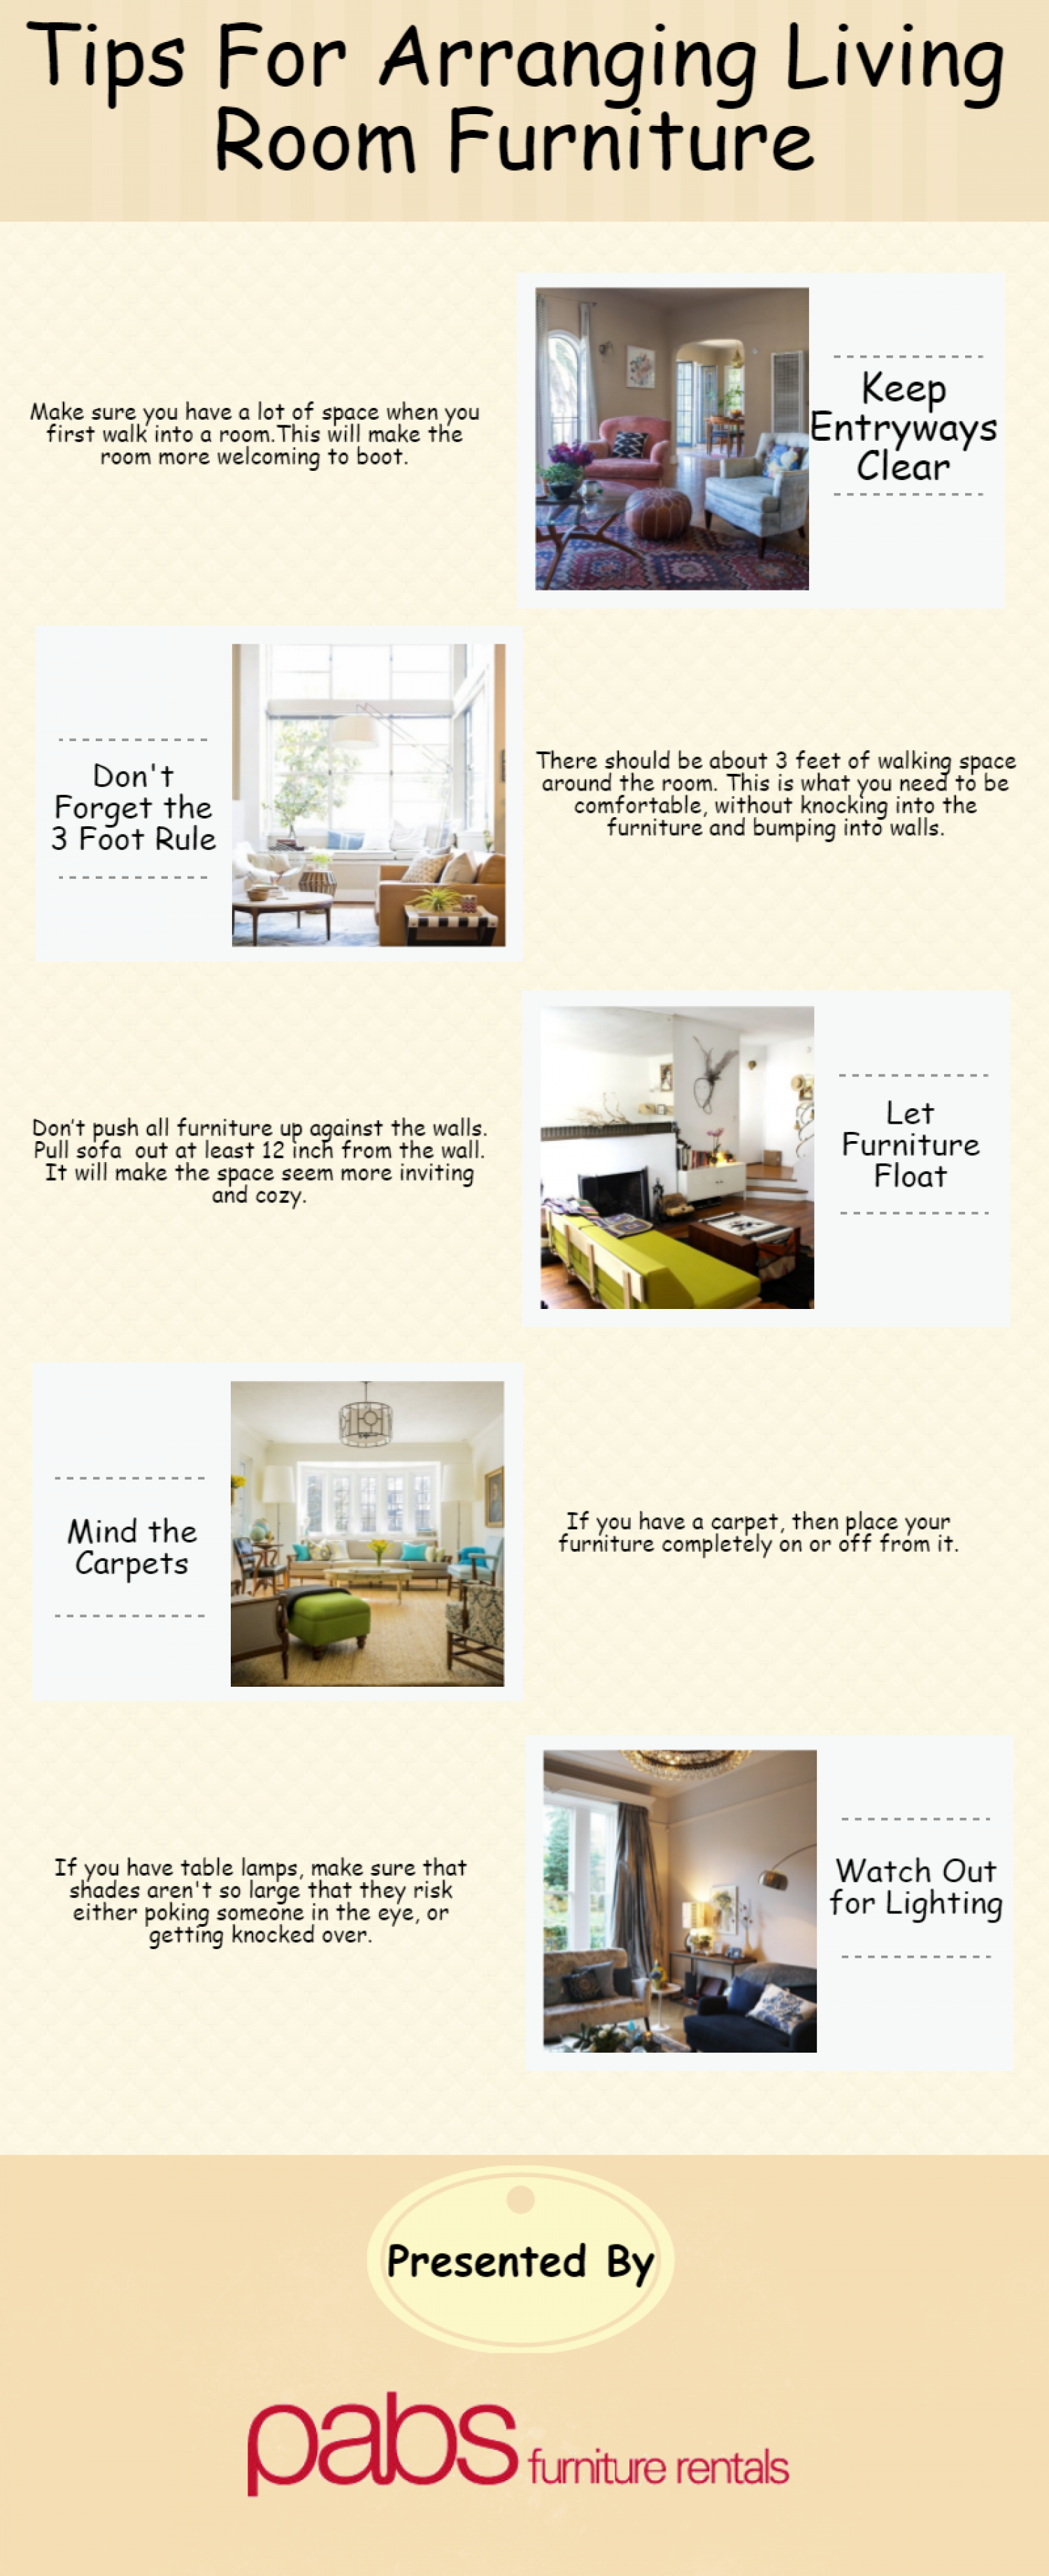 Tips For Arranging Living Room Furniture | Visual.ly